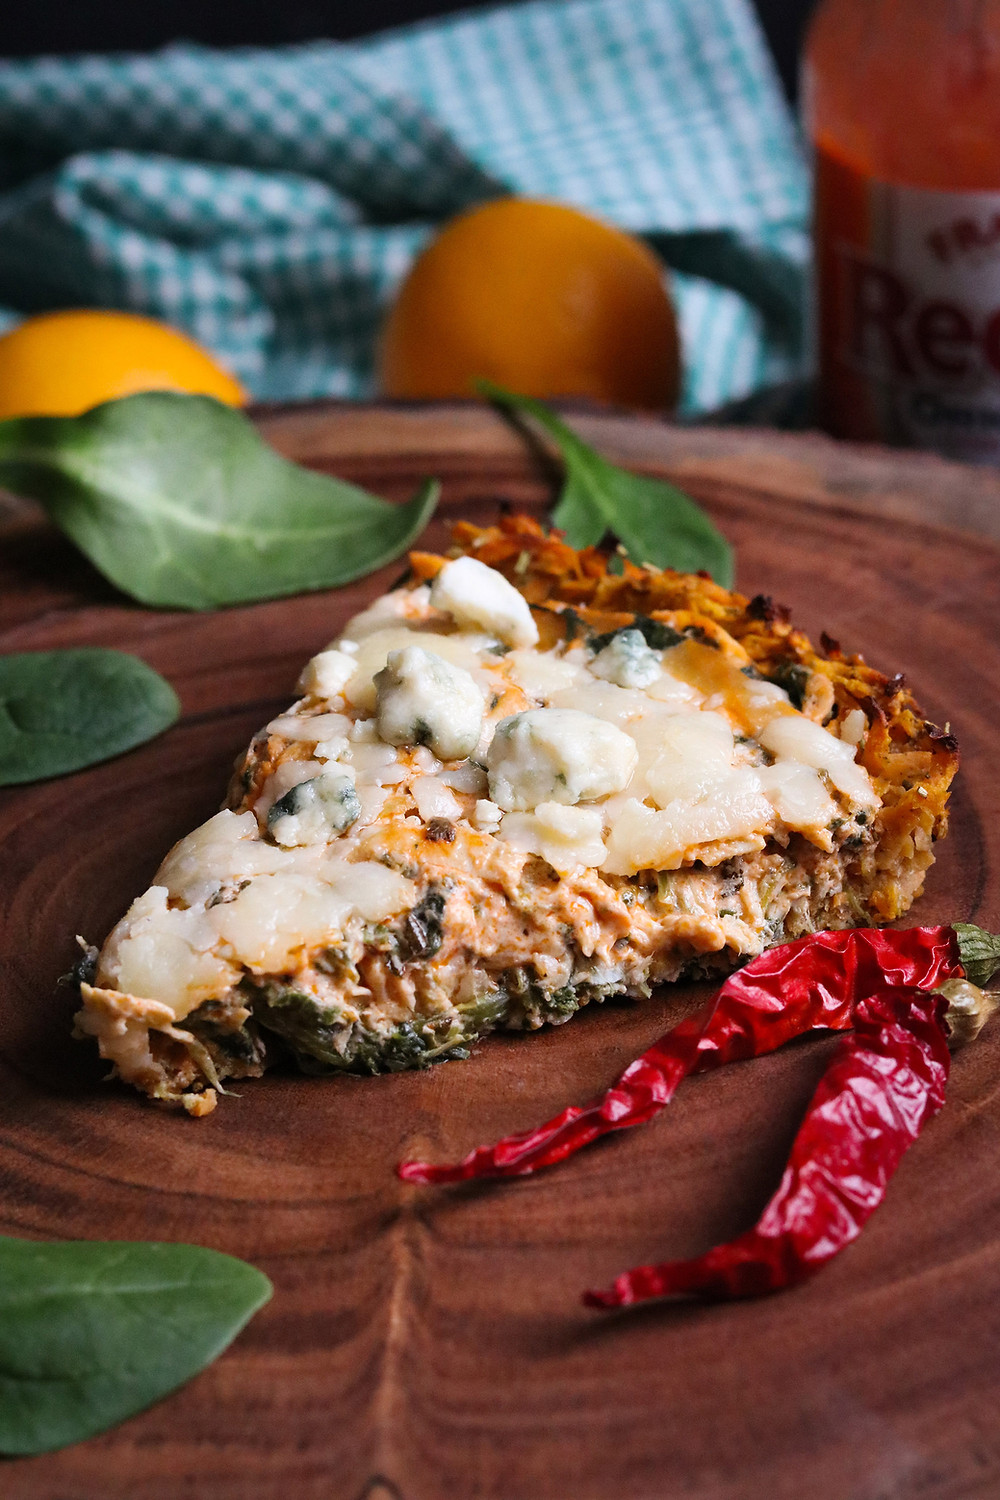 Rosemary Buffalo Chicken Tart with Slow Cooker Chicken, Sweet Potato Crust, Spinach, and Crumbled Gorgonzola